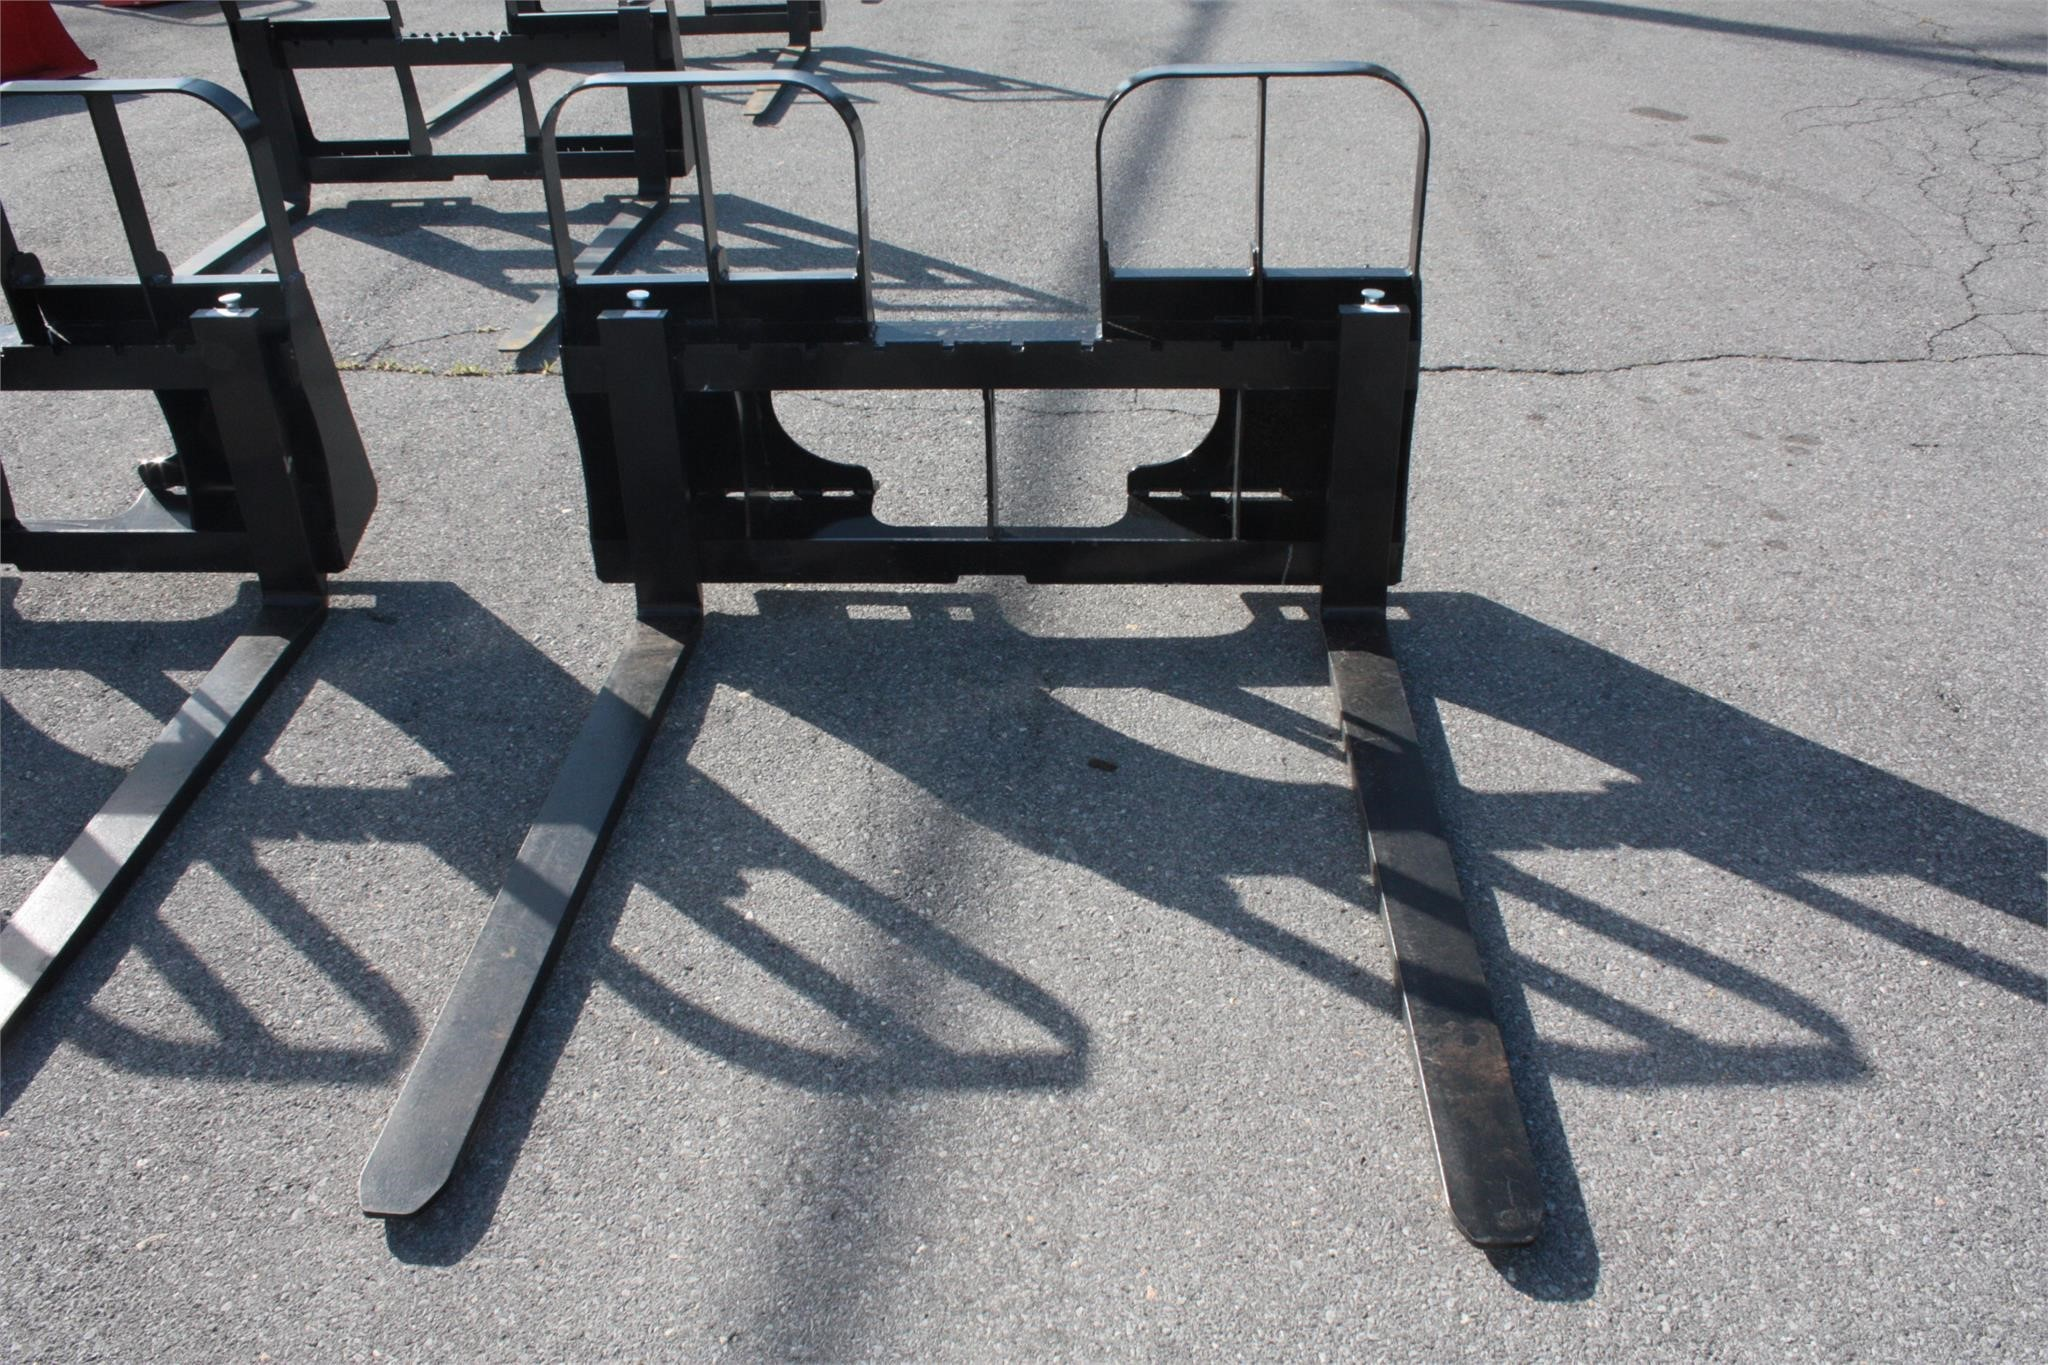 2020 HLA HD42BO500 Loader and Skid Steer Attachment